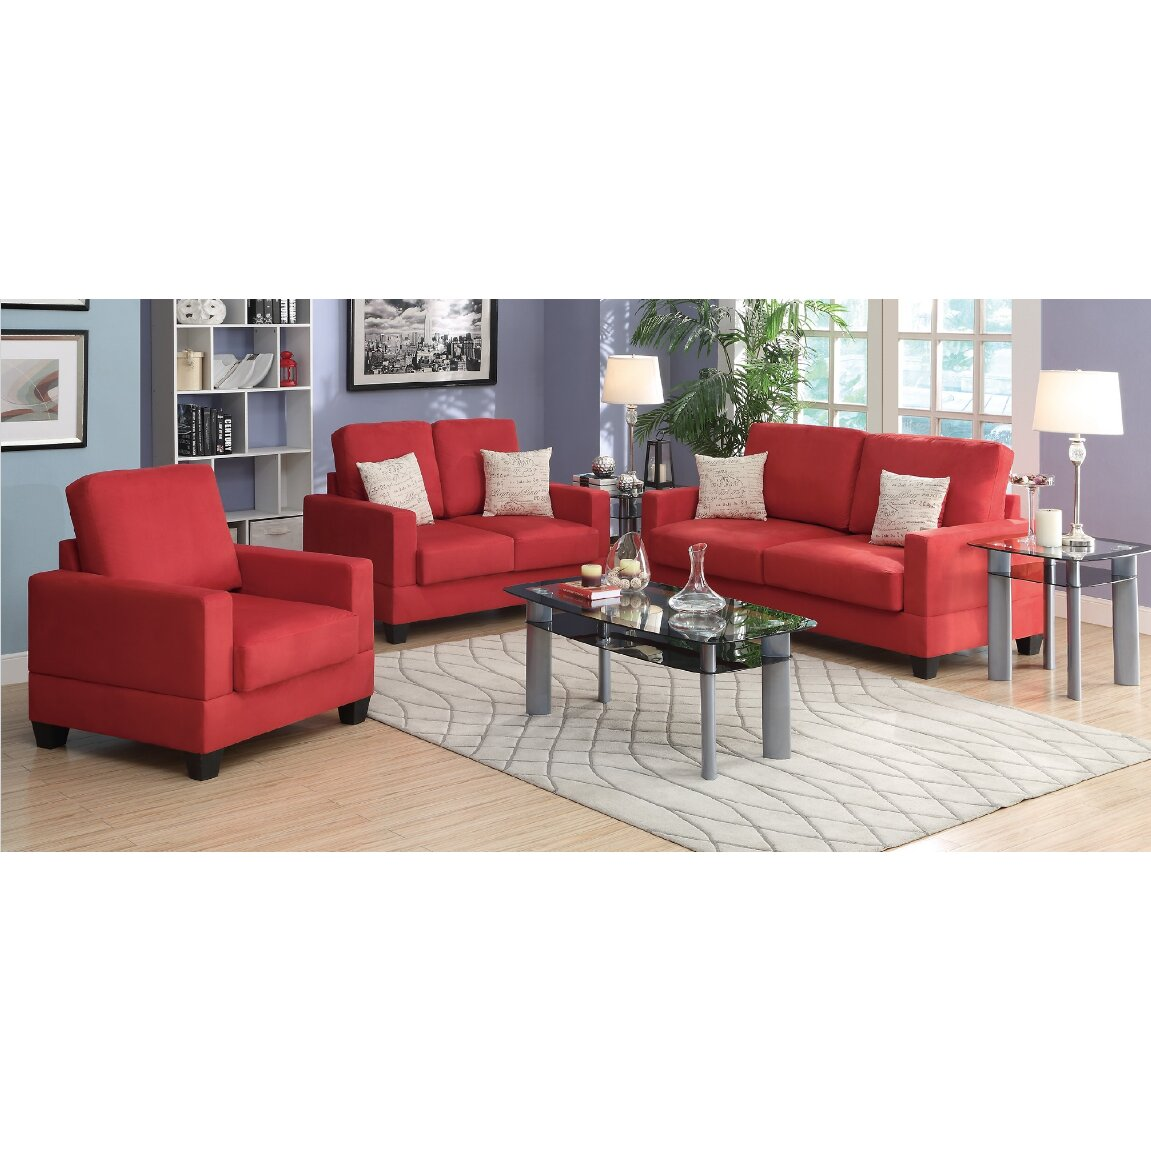 A j homes studio pandora 3 piece living room set wayfair for Living room 3 piece sets